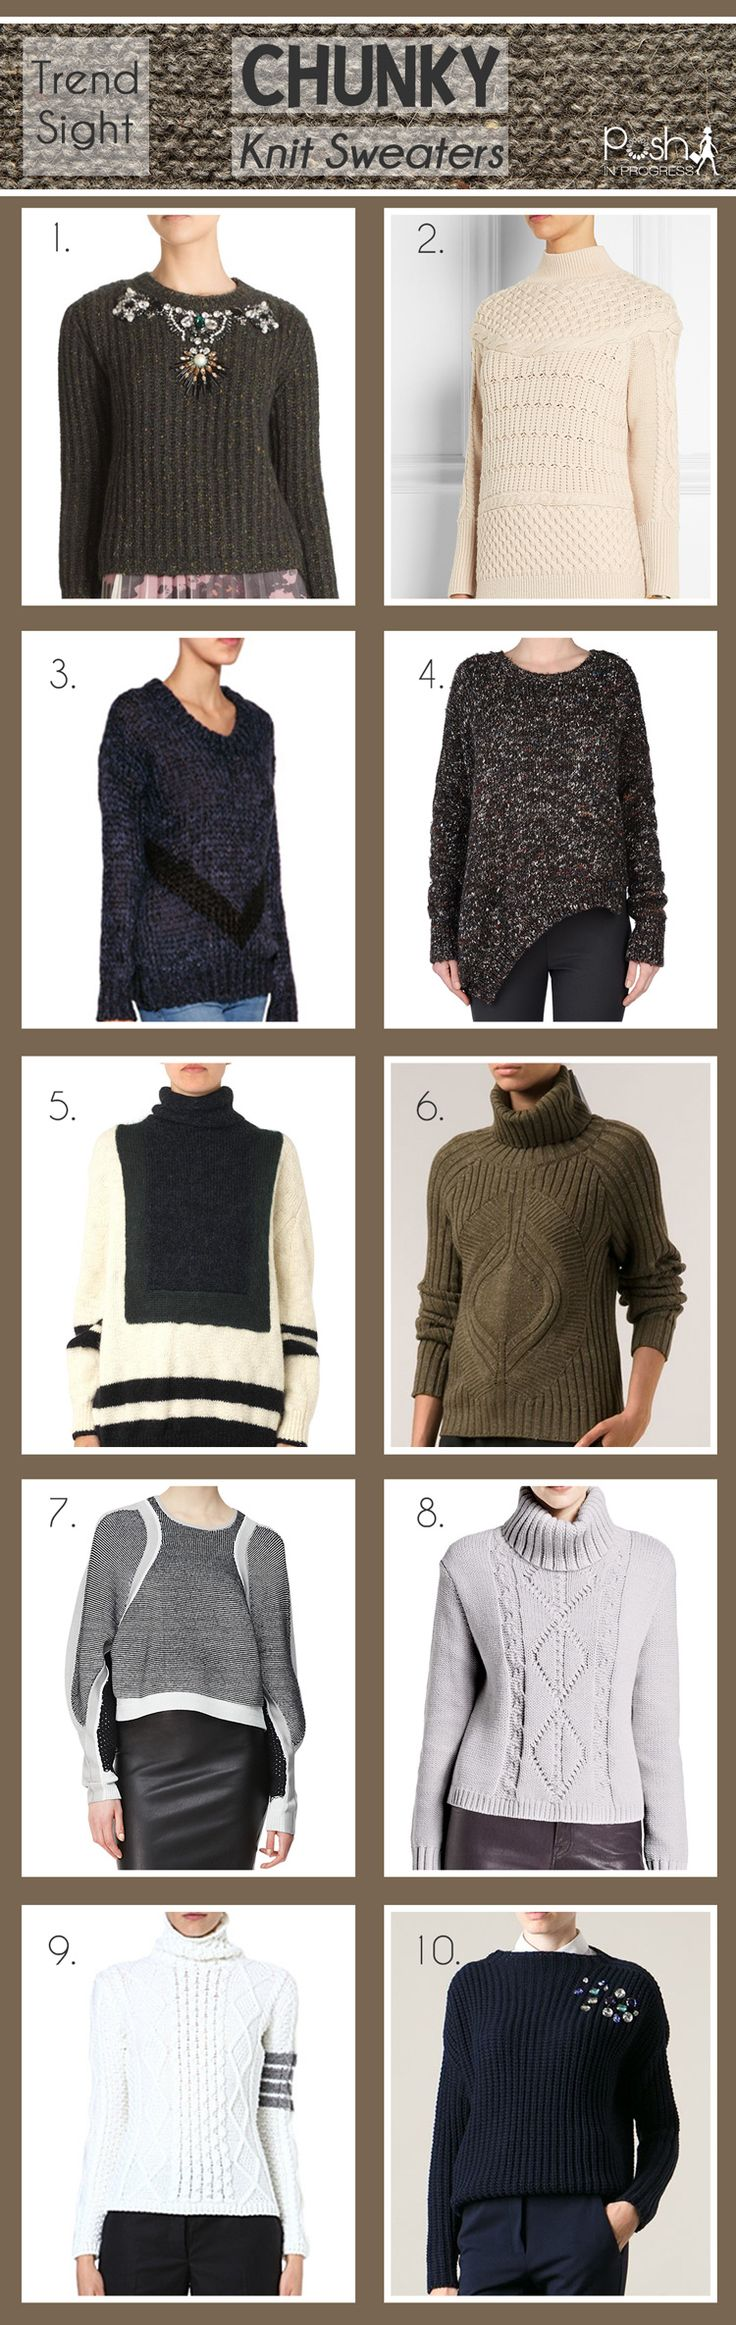 93 best Sweaters images on Pinterest | Fall, Winter outfits and ...